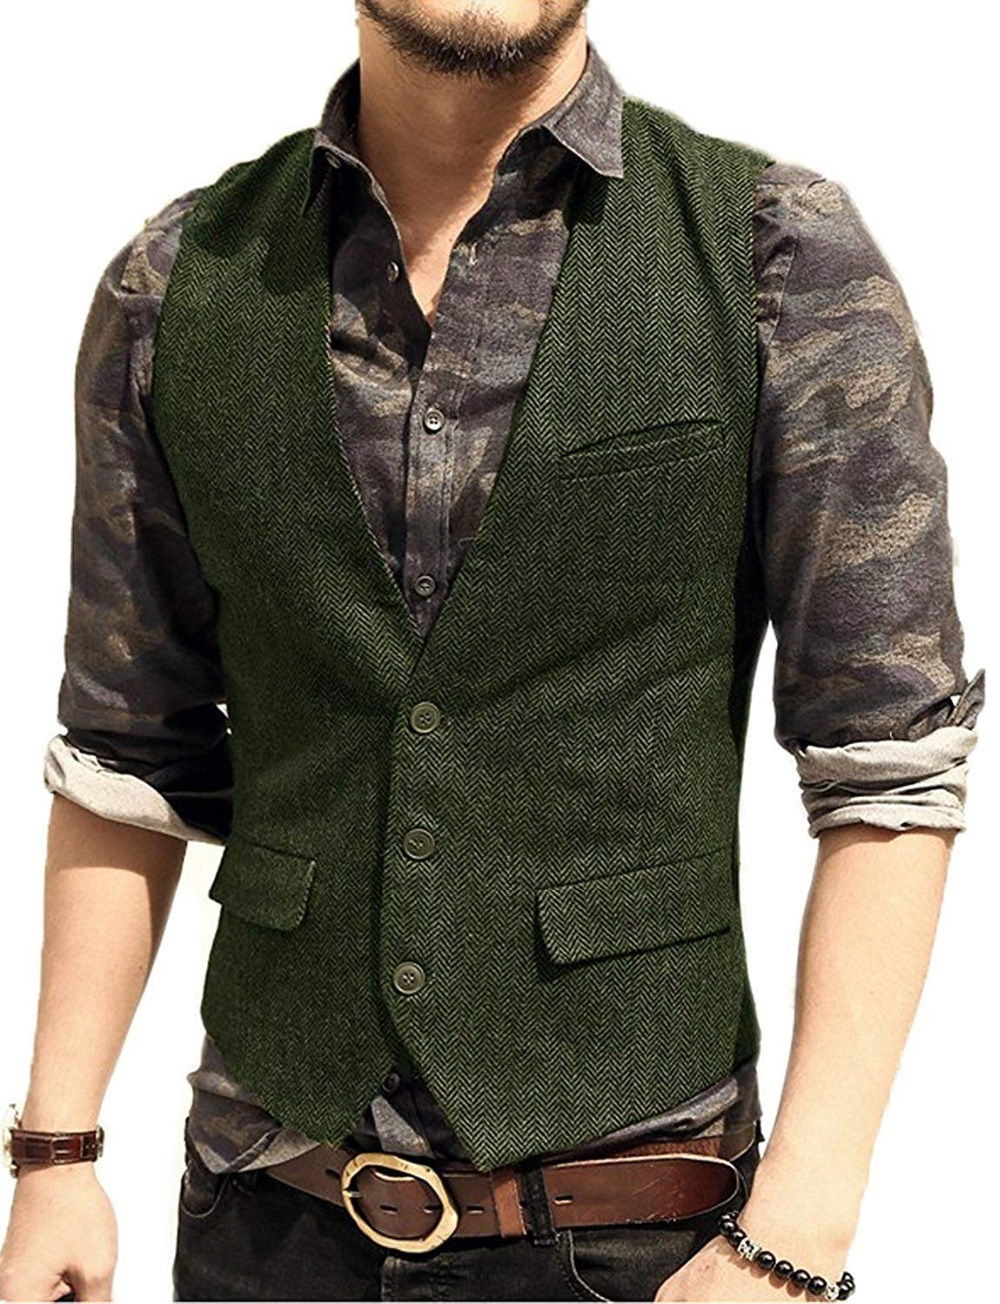 Men's Suit Vest V Neck Wool Herringbone Tweed Casual Waistcoat Formal Business Vest Groomman For Green/Black/Brown/Coffee